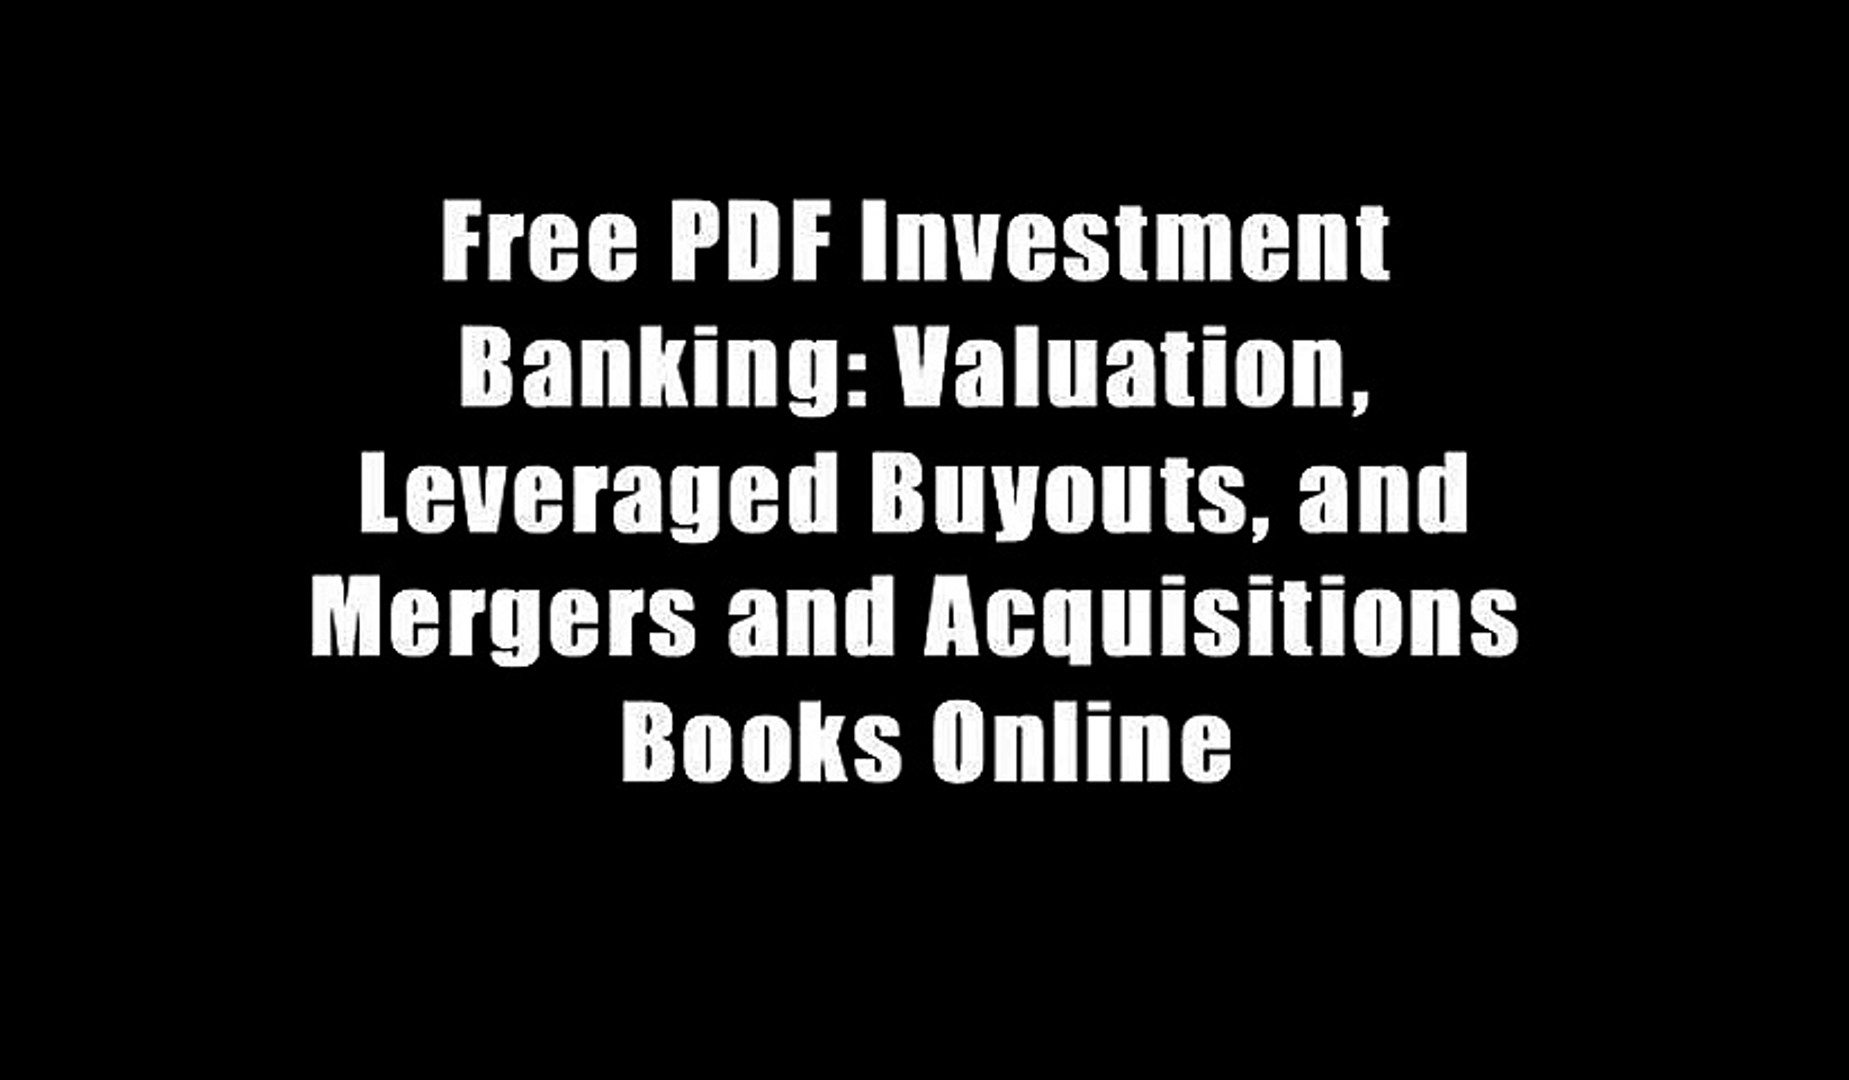 Free PDF Investment Banking: Valuation, Leveraged Buyouts, and Mergers and  Acquisitions Books Online